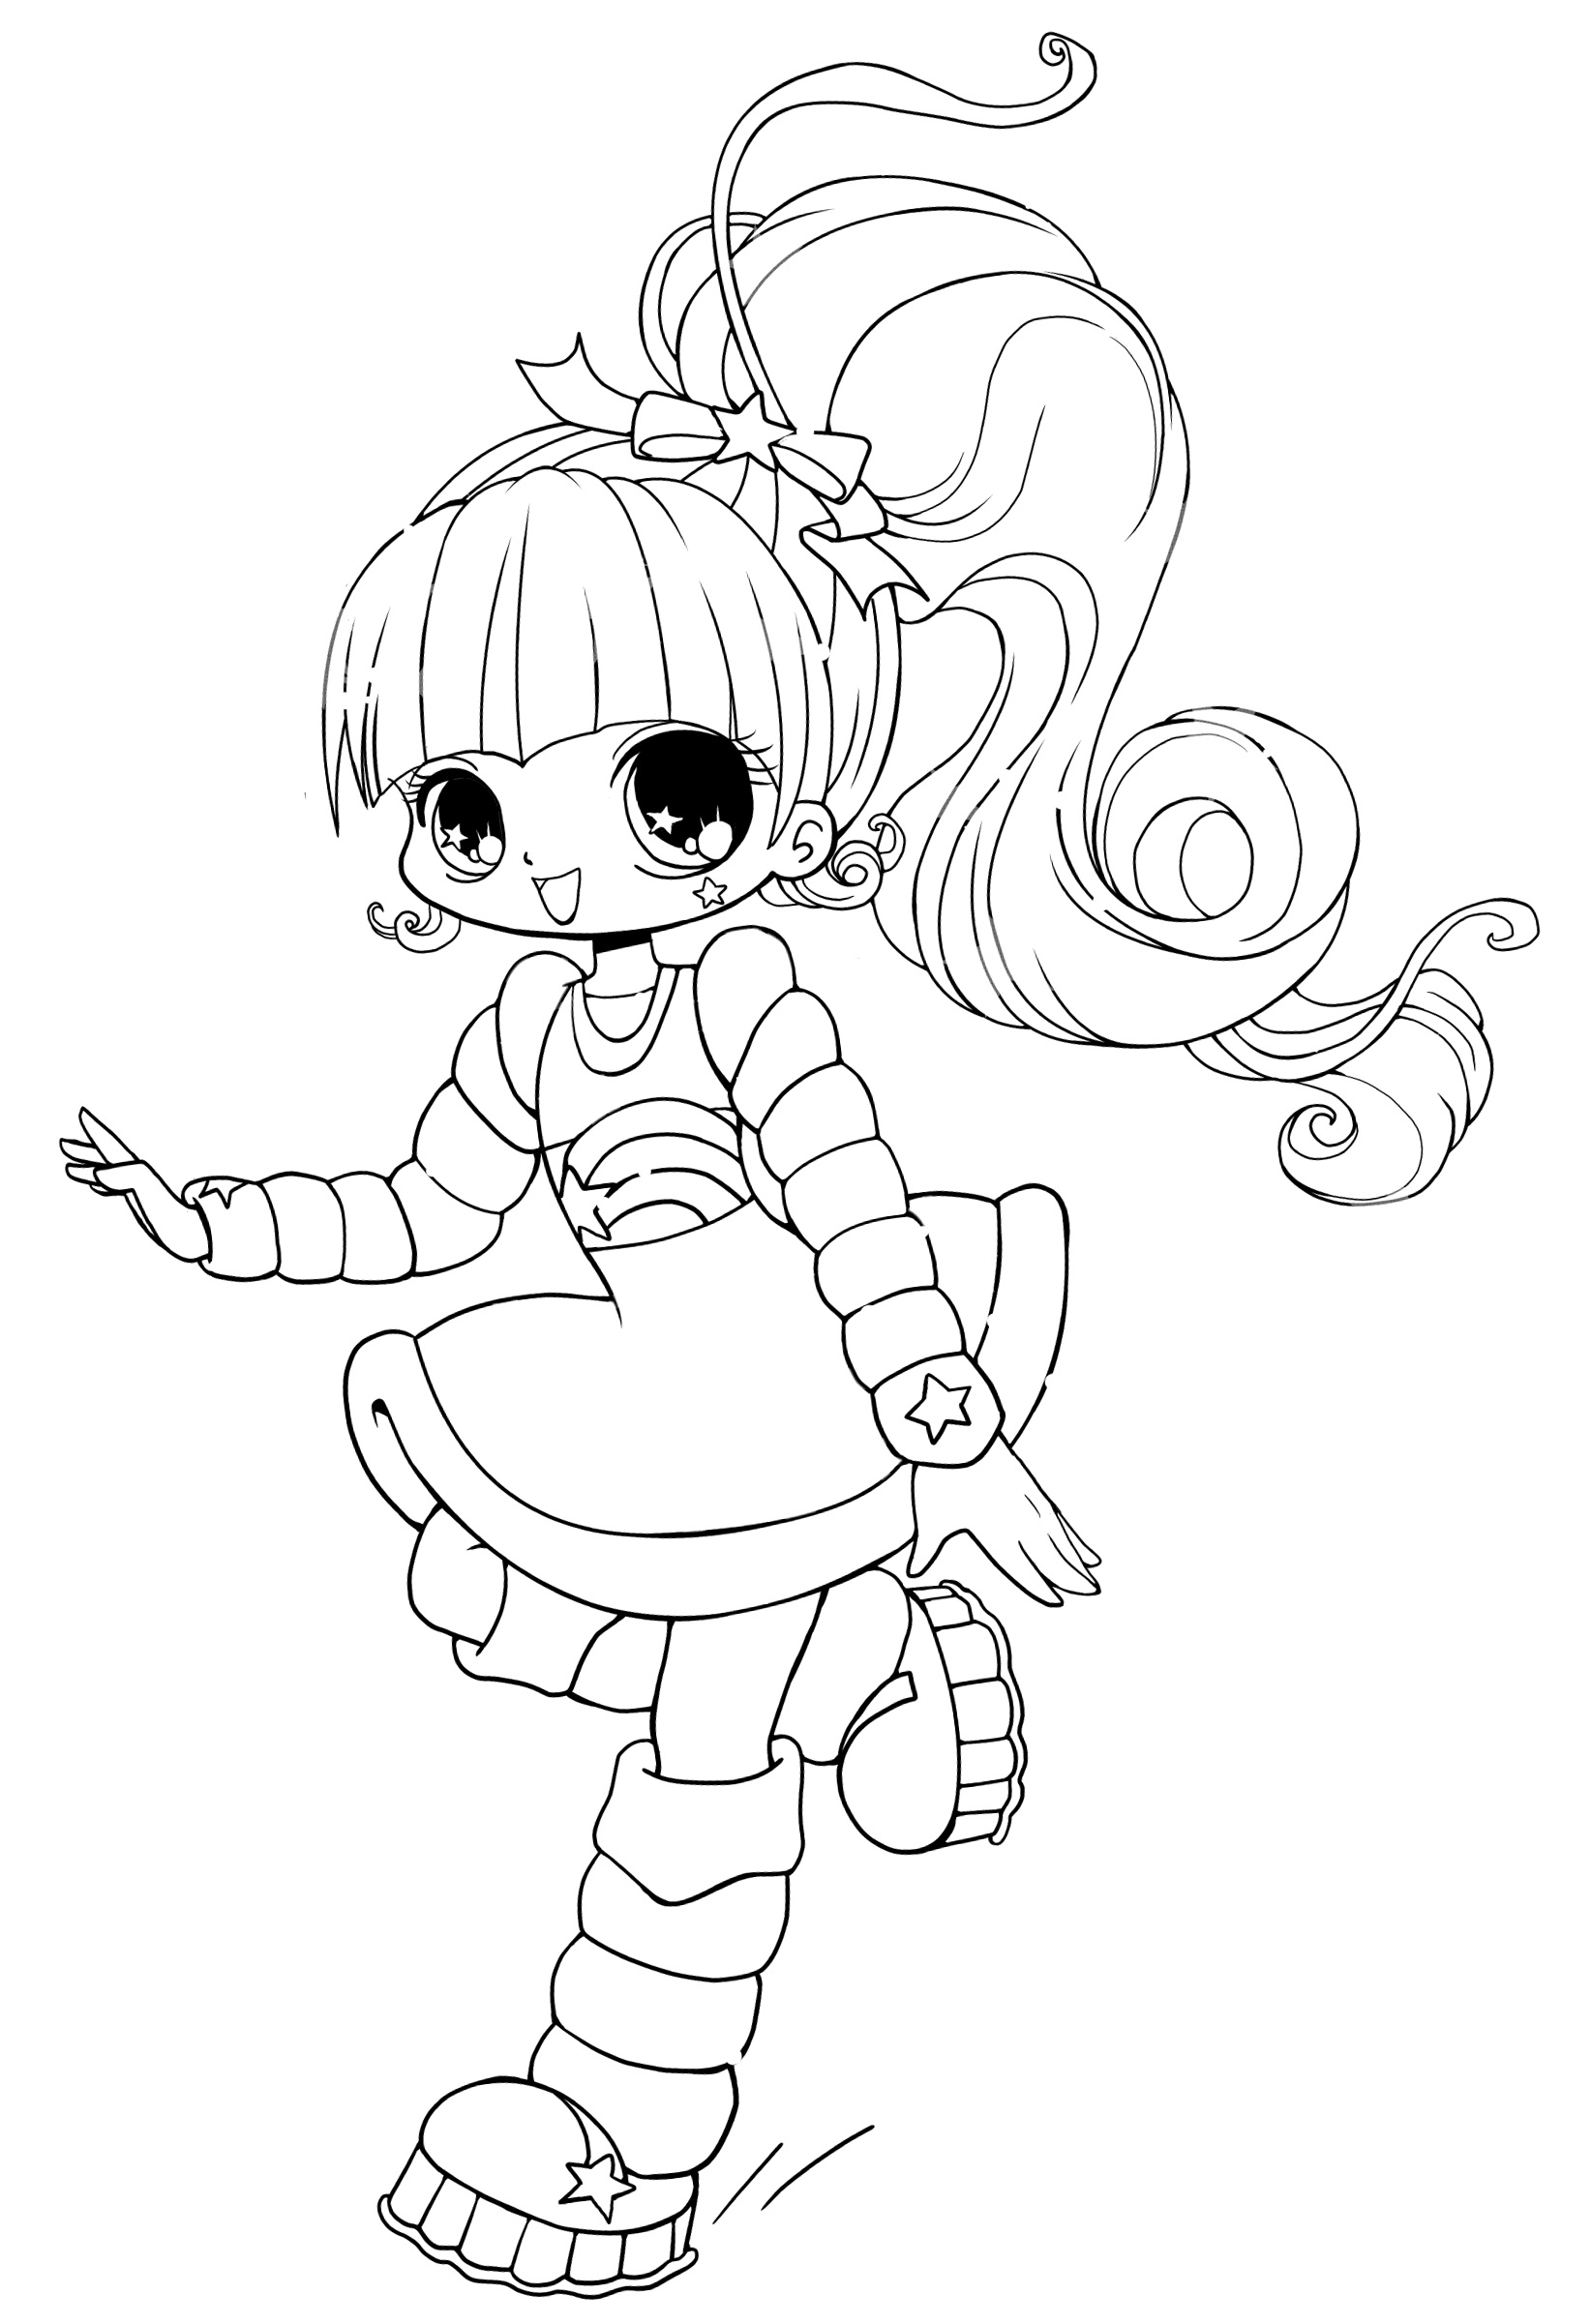 1644x2402 Free Printable Chibi Coloring Pages For Kids